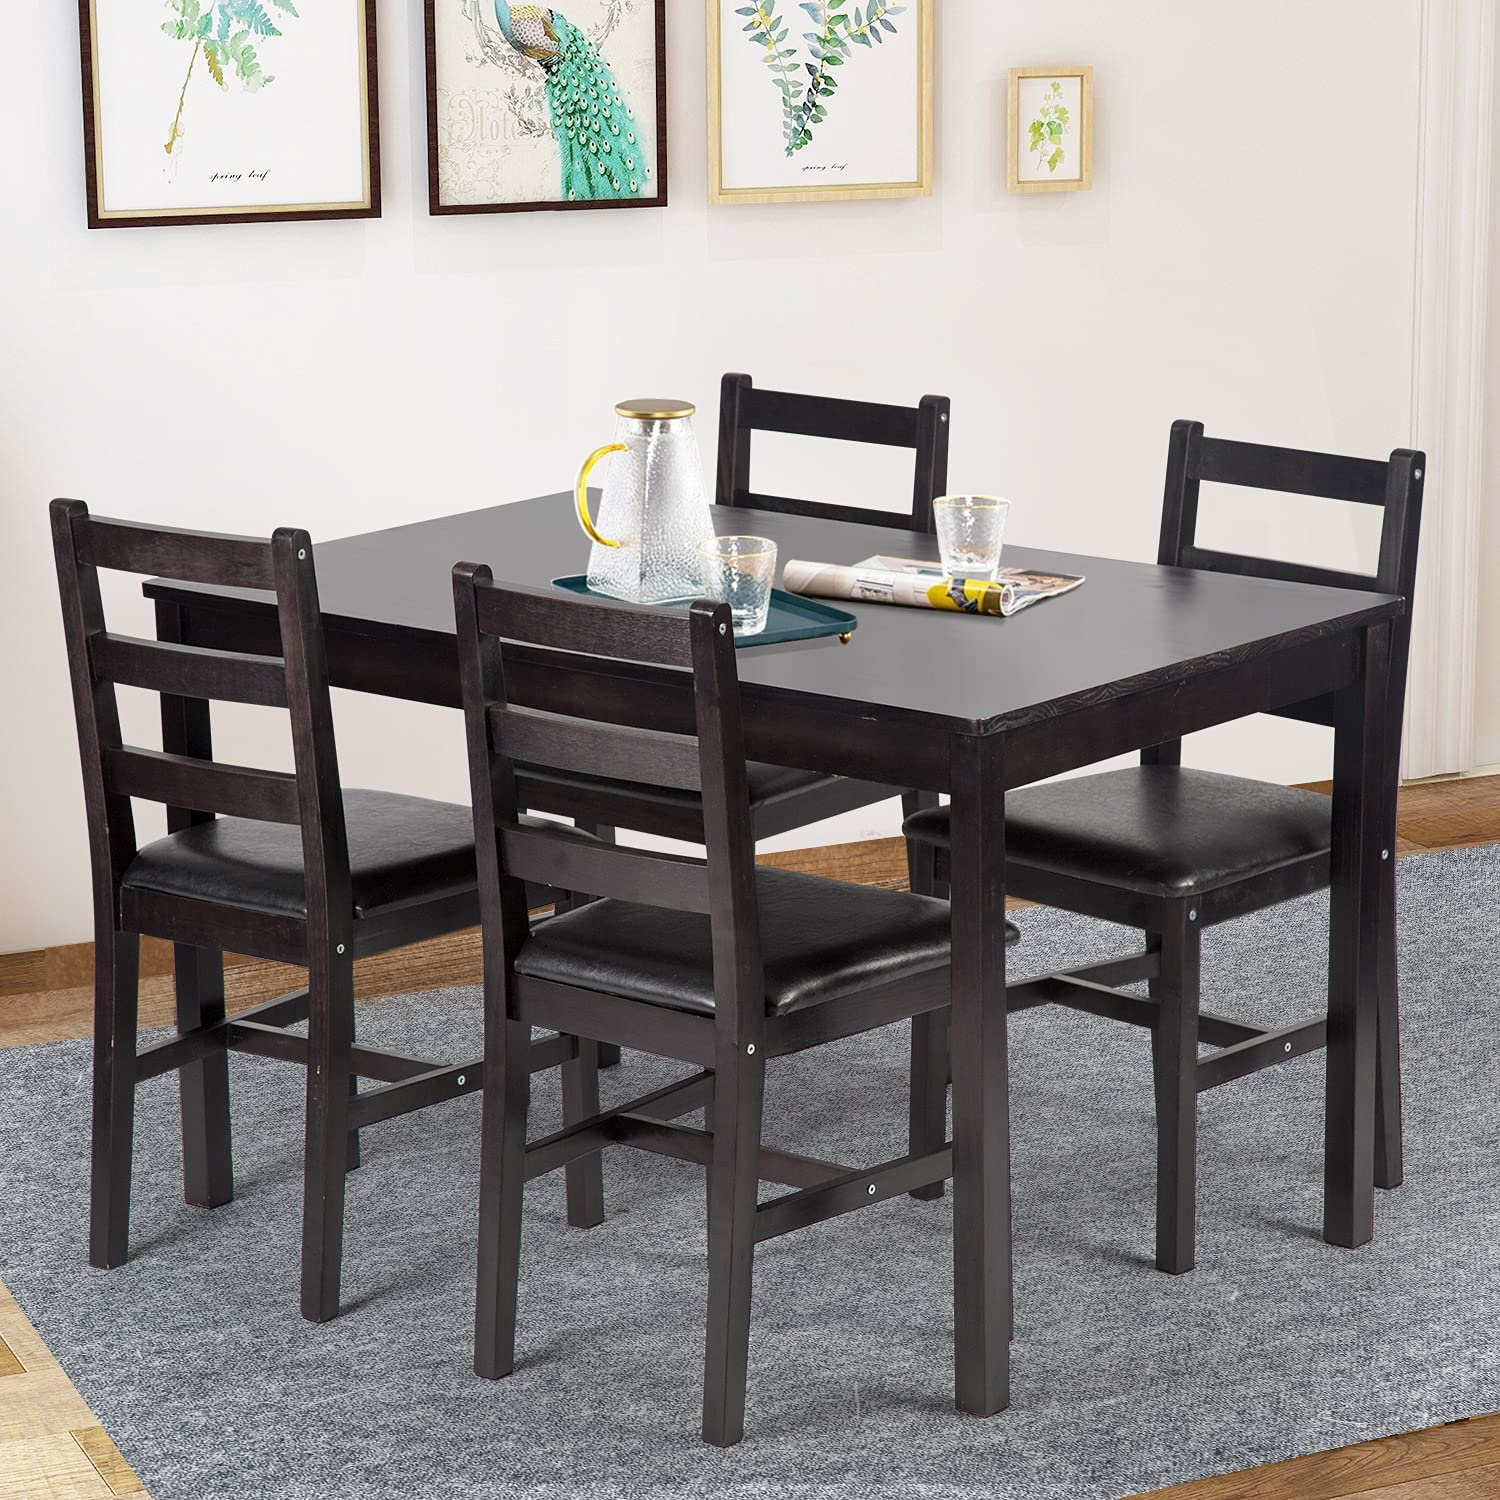 Dining Table Set Pine Kitchen Columbus Financial sales sale Mall for and 4 Chairs